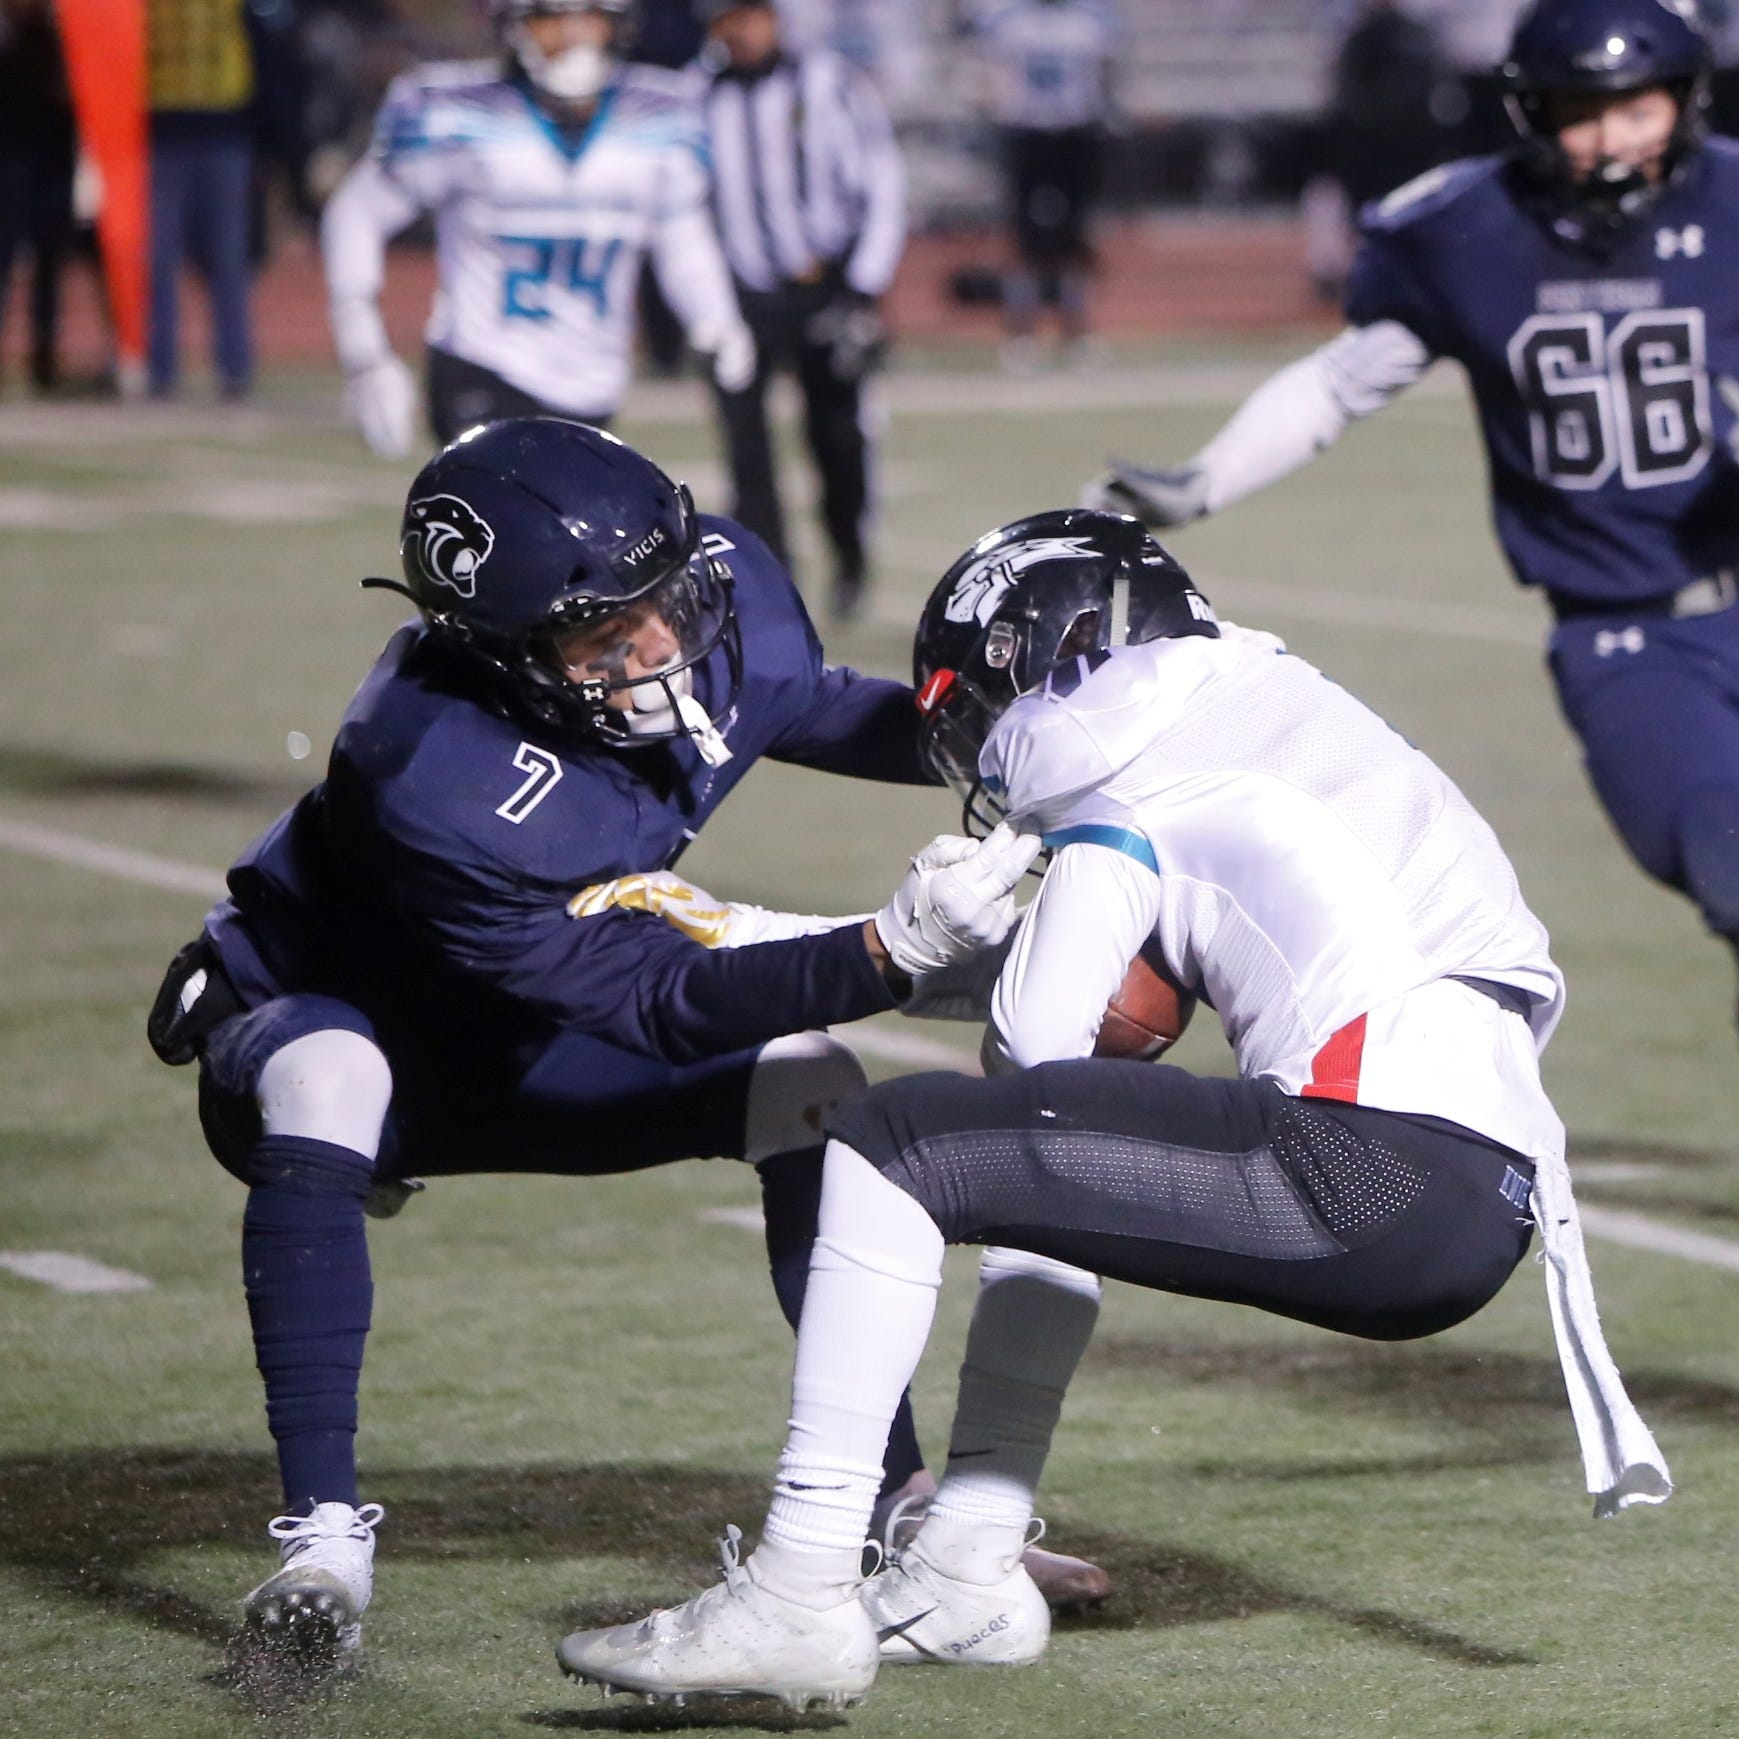 Panthers crush Del Norte in 5A playoff opener